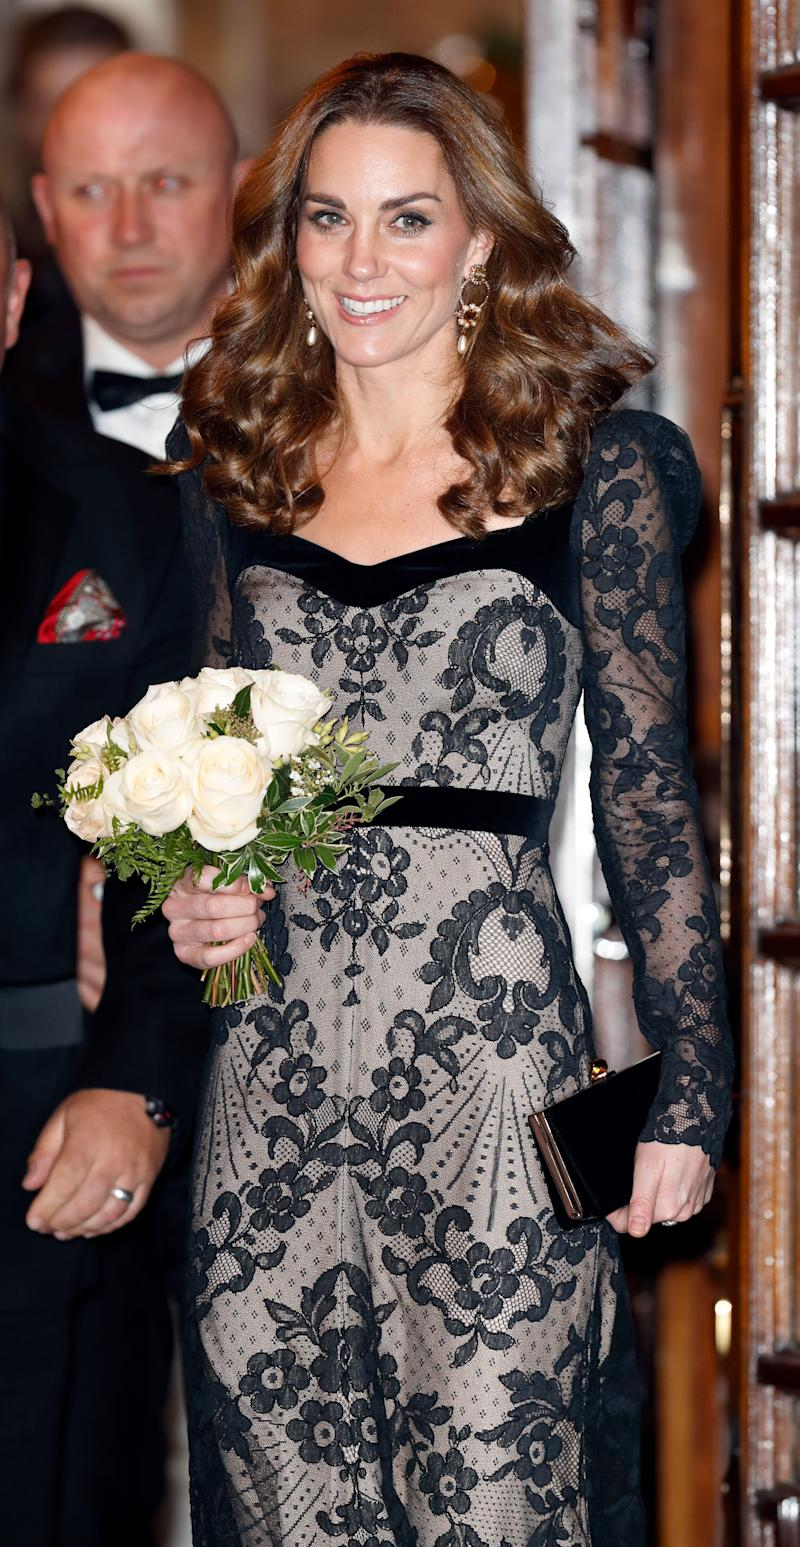 She wore this stunning lace gown, also by Alexander McQueen, one of her favourite designers, to the Royal Variety Performance at the Palladium Theatre in London.